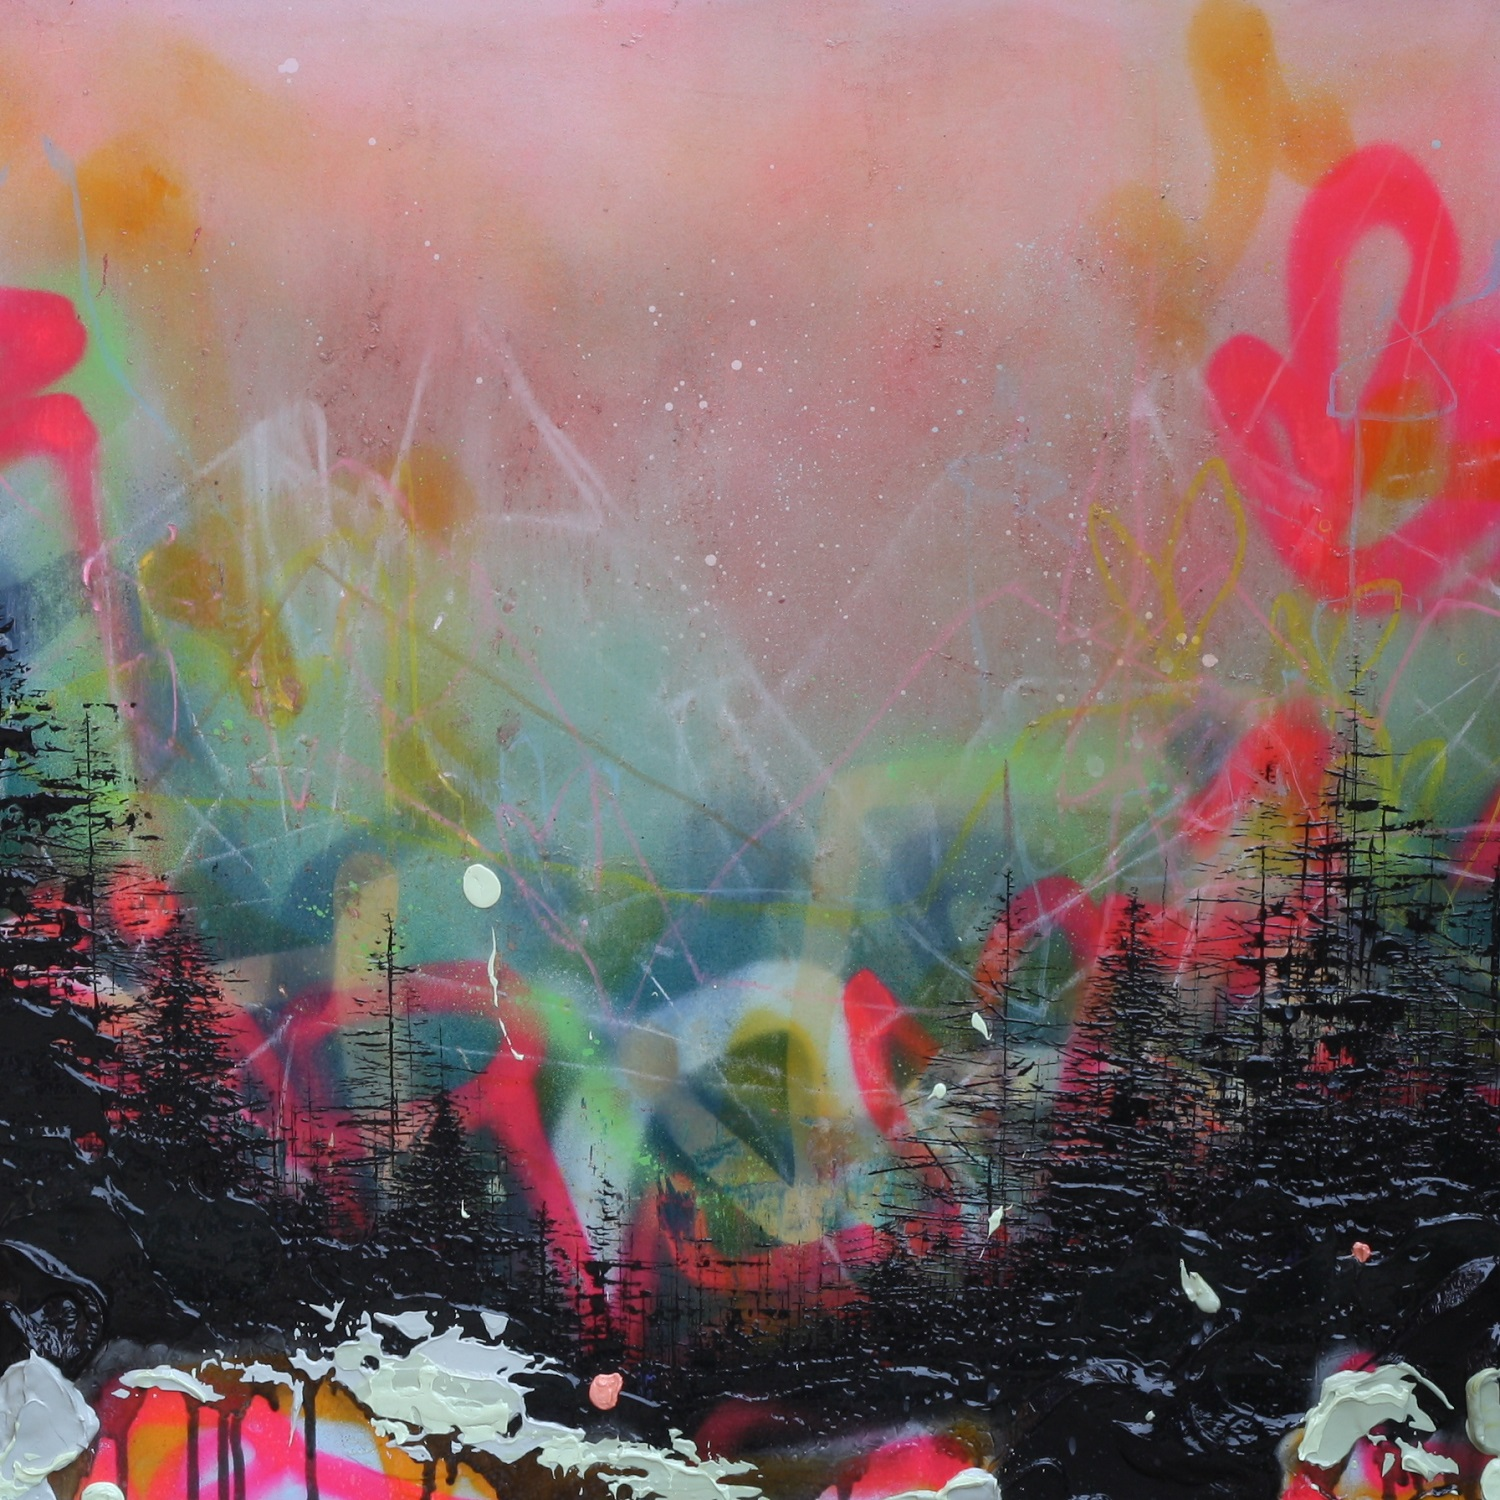 New gallery artist Lee Herring will be exhibiting  'Glowing Forest'  at Ones to Watch.